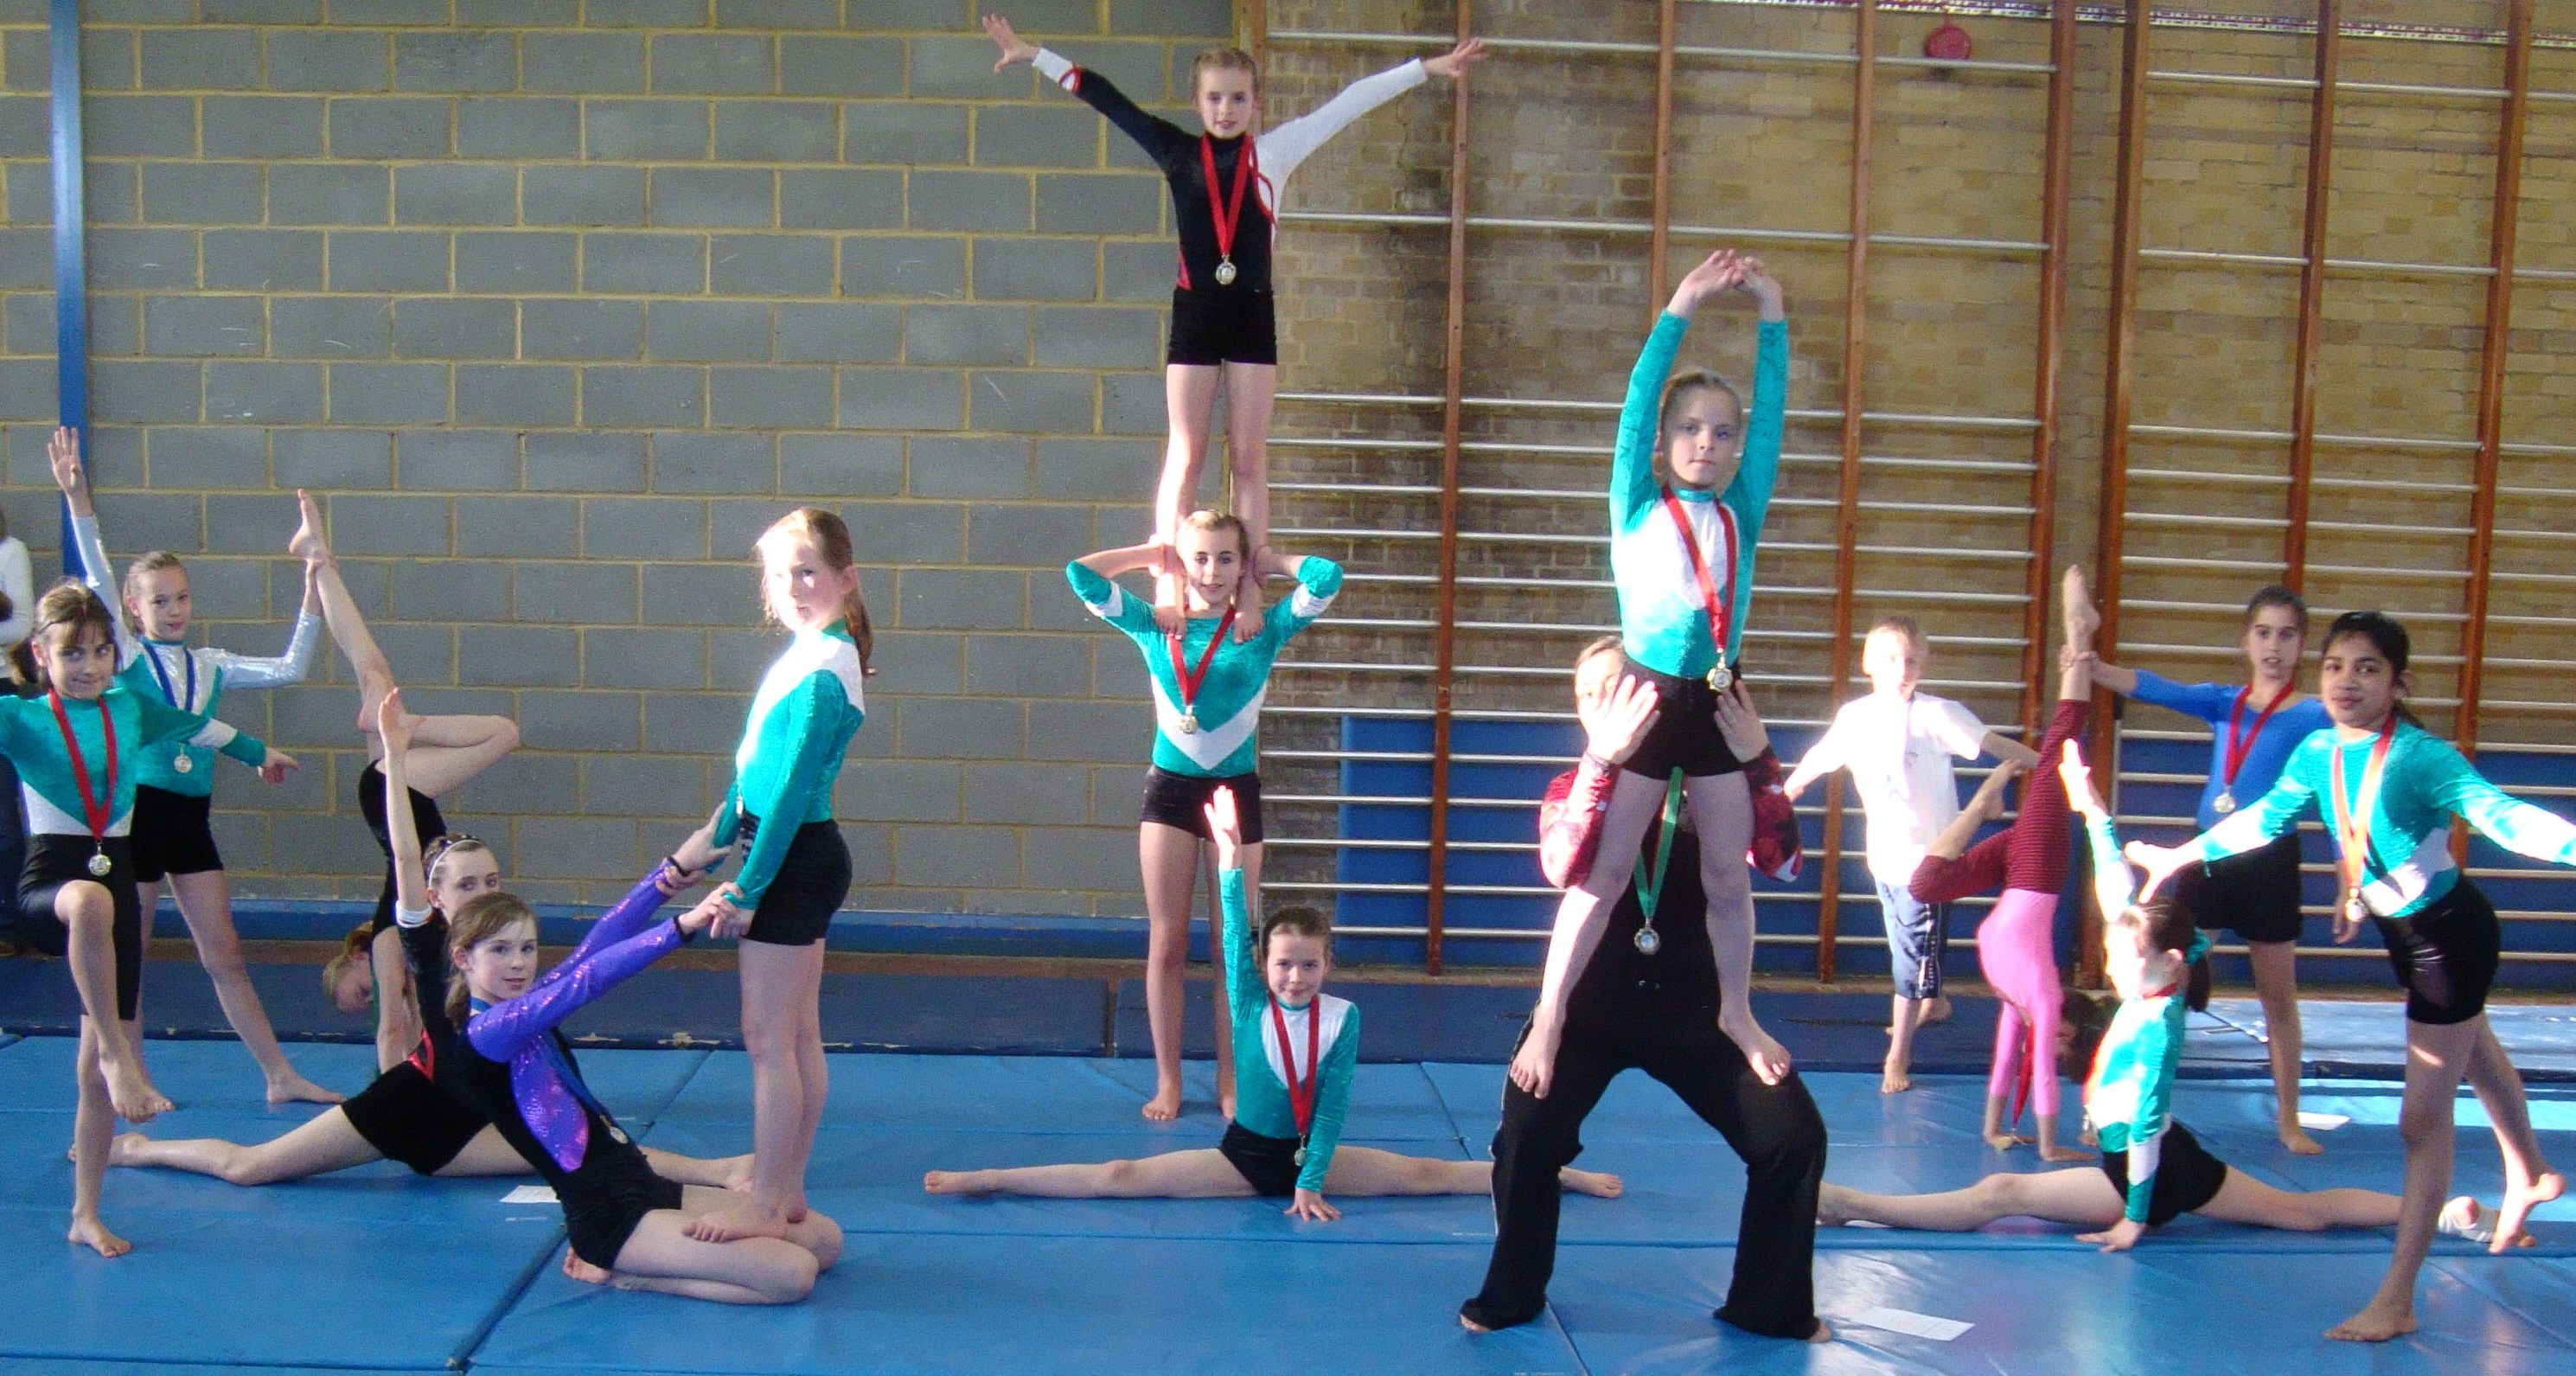 The gymnasts going through their paces